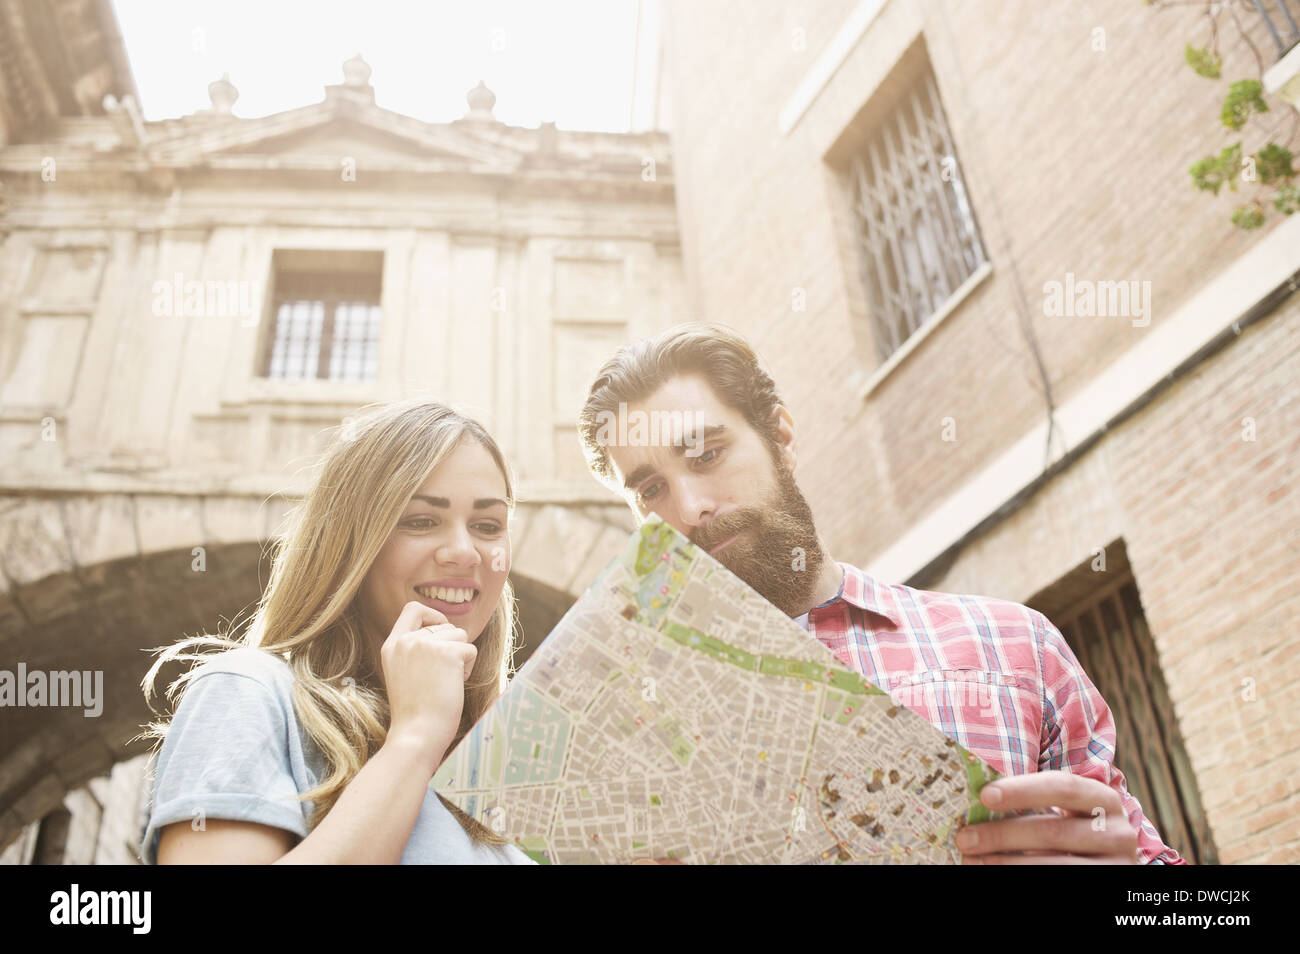 Young tourist couple looking at map outside Valencia Cathedral, Valencia, Spain Stock Photo